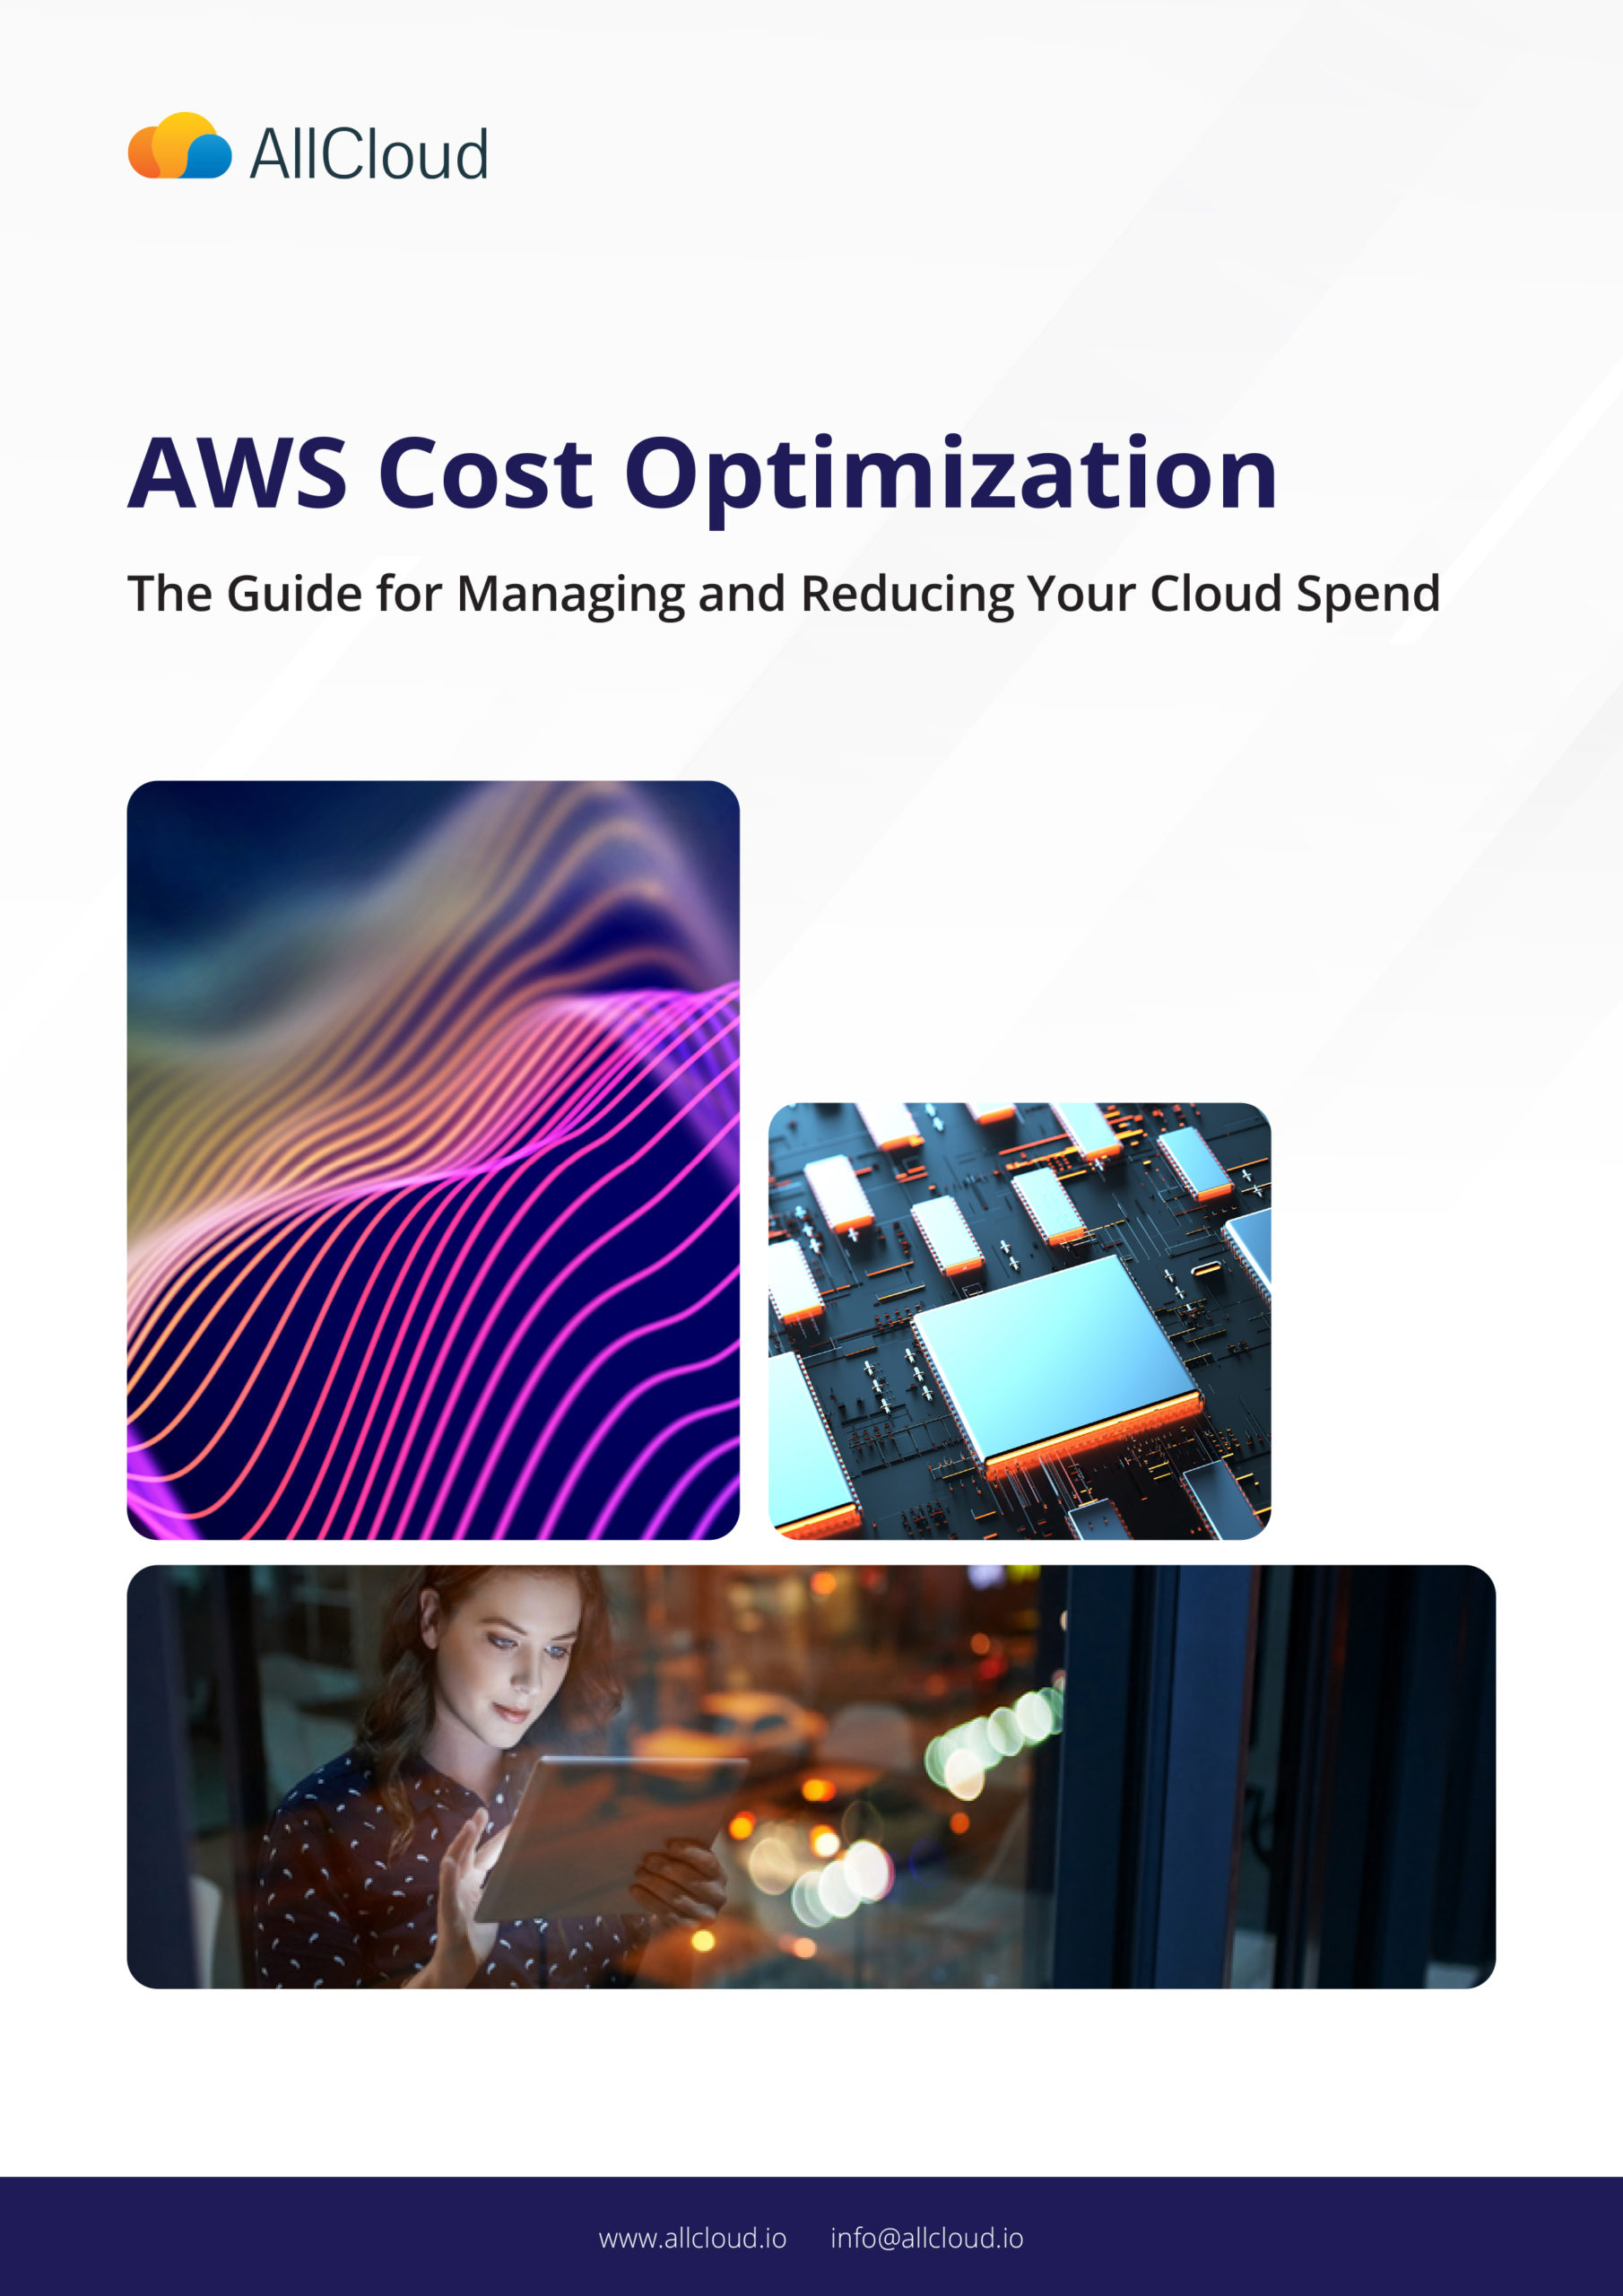 Download the guide to accelerate your cloud migration on AWS.